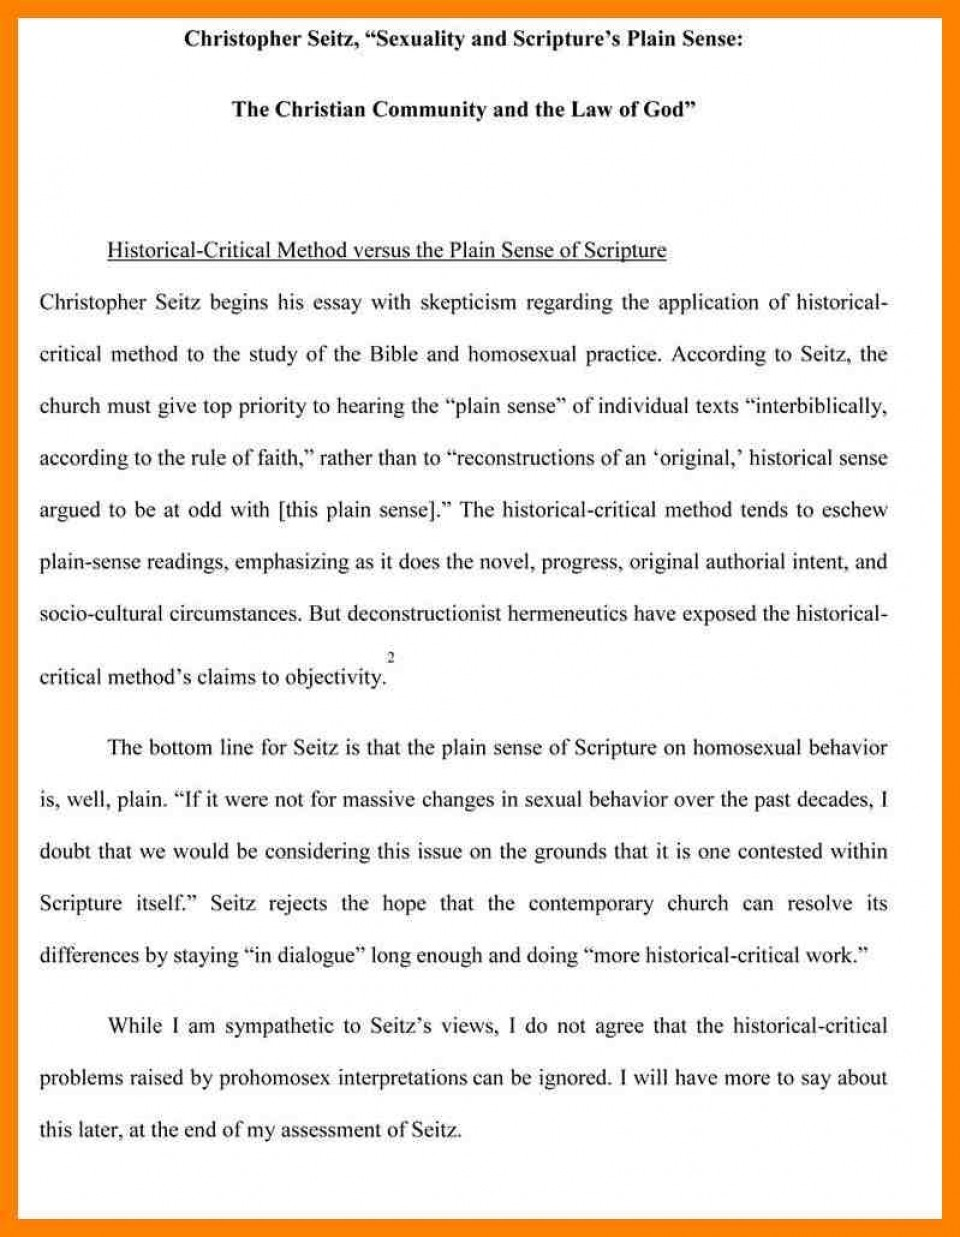 012 Essay Example Writing An Evaluation Madratco X Incredible Book Samples On Movies Self Format 960